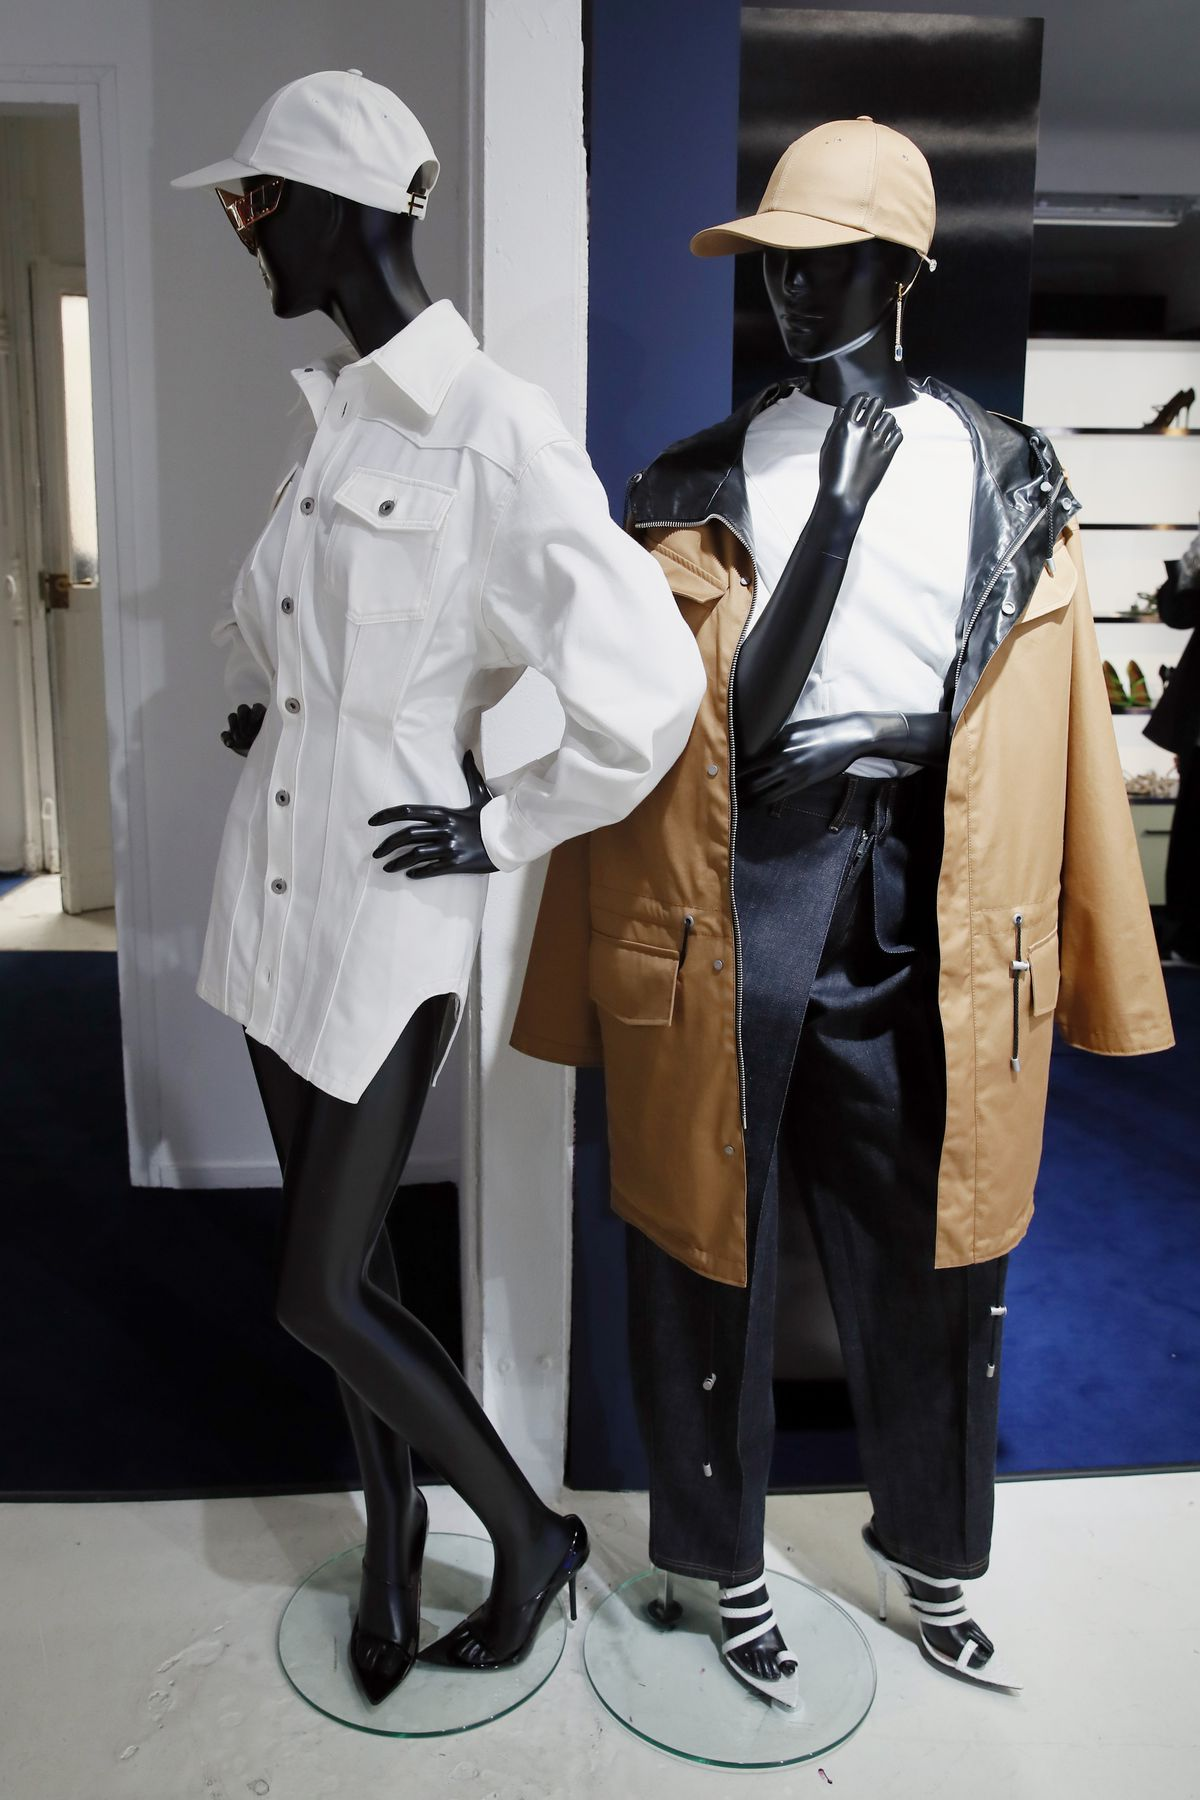 Creations are displayed as Rihanna unveiled her first fashion designs for Fenty at a pop-up store in Paris, France, Wednesday, May 22, 2019. Fenty says the brand will be based in Paris, like its parent company, conglomerate LVMH, but will operate from a d